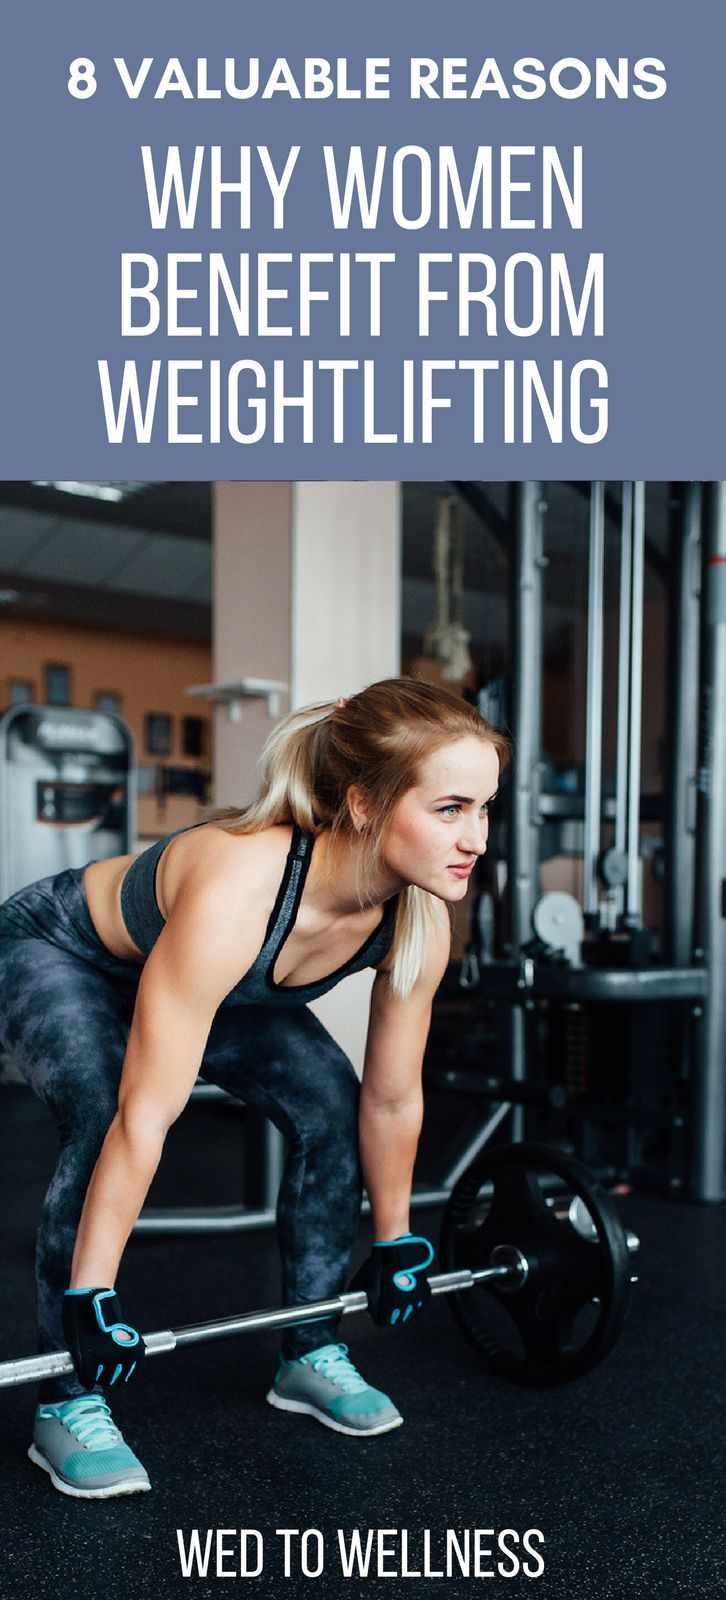 8 Valuable Reasons Why Women Benefit From Weightlifting  #womenwholift #womenshealth #weightlifting...